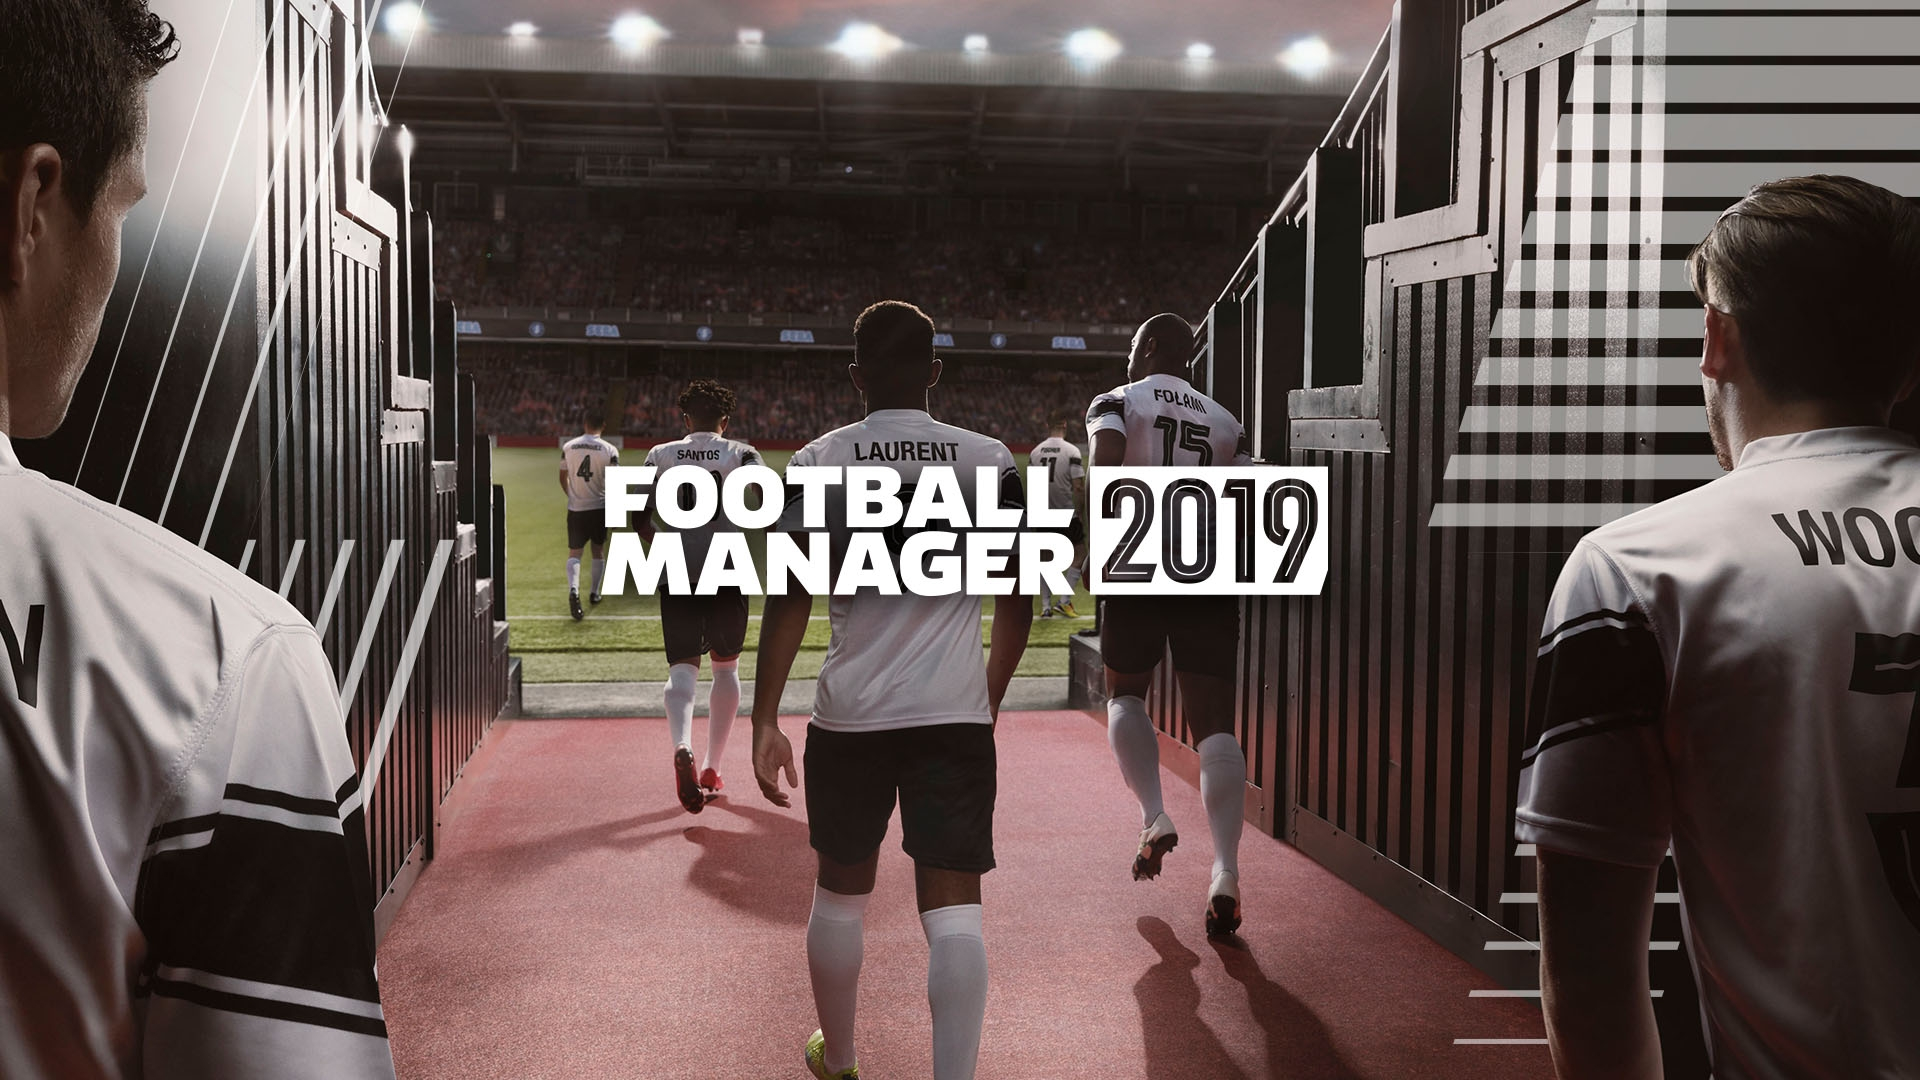 Football Manager 2019 Official Steam Key Wholesale